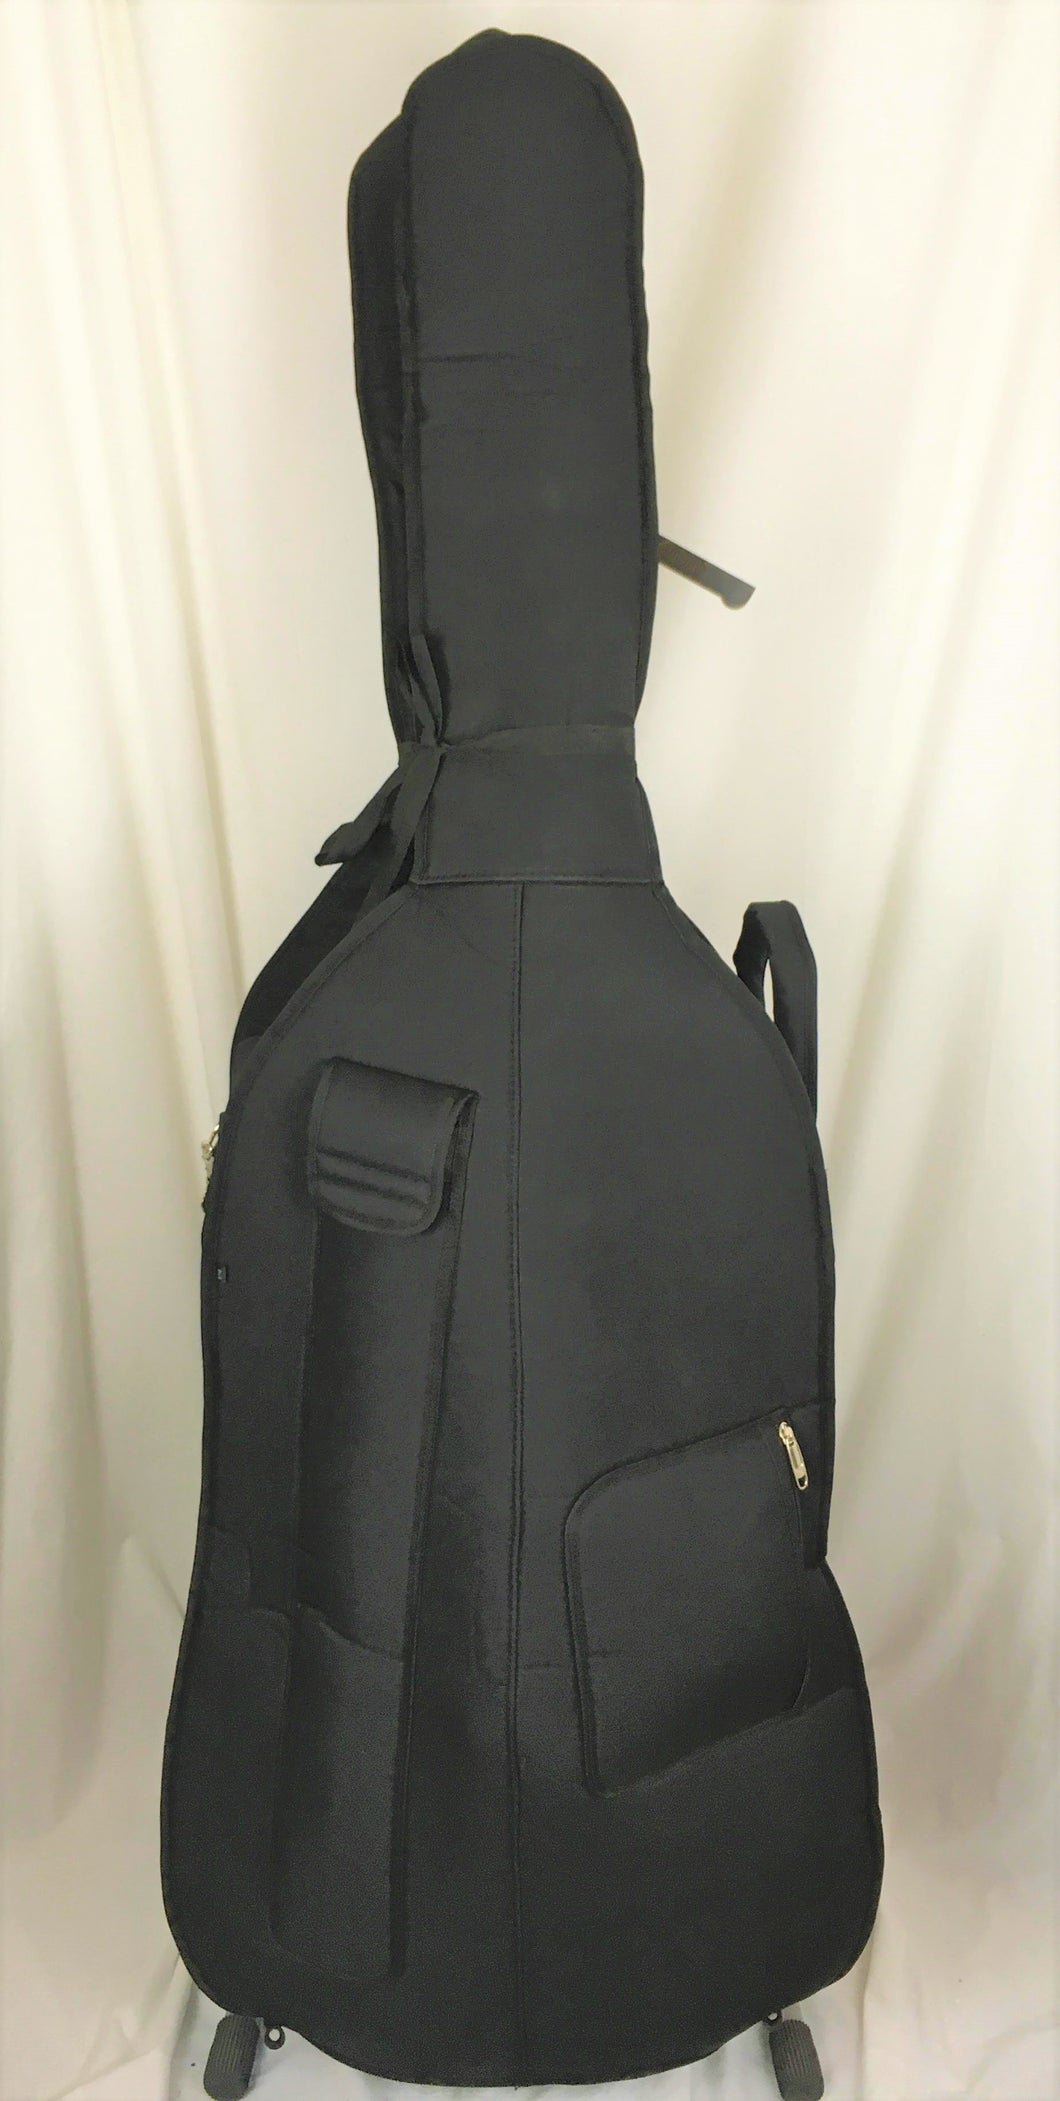 Bag/case for 1/2 size bass - Quantum Bass Market